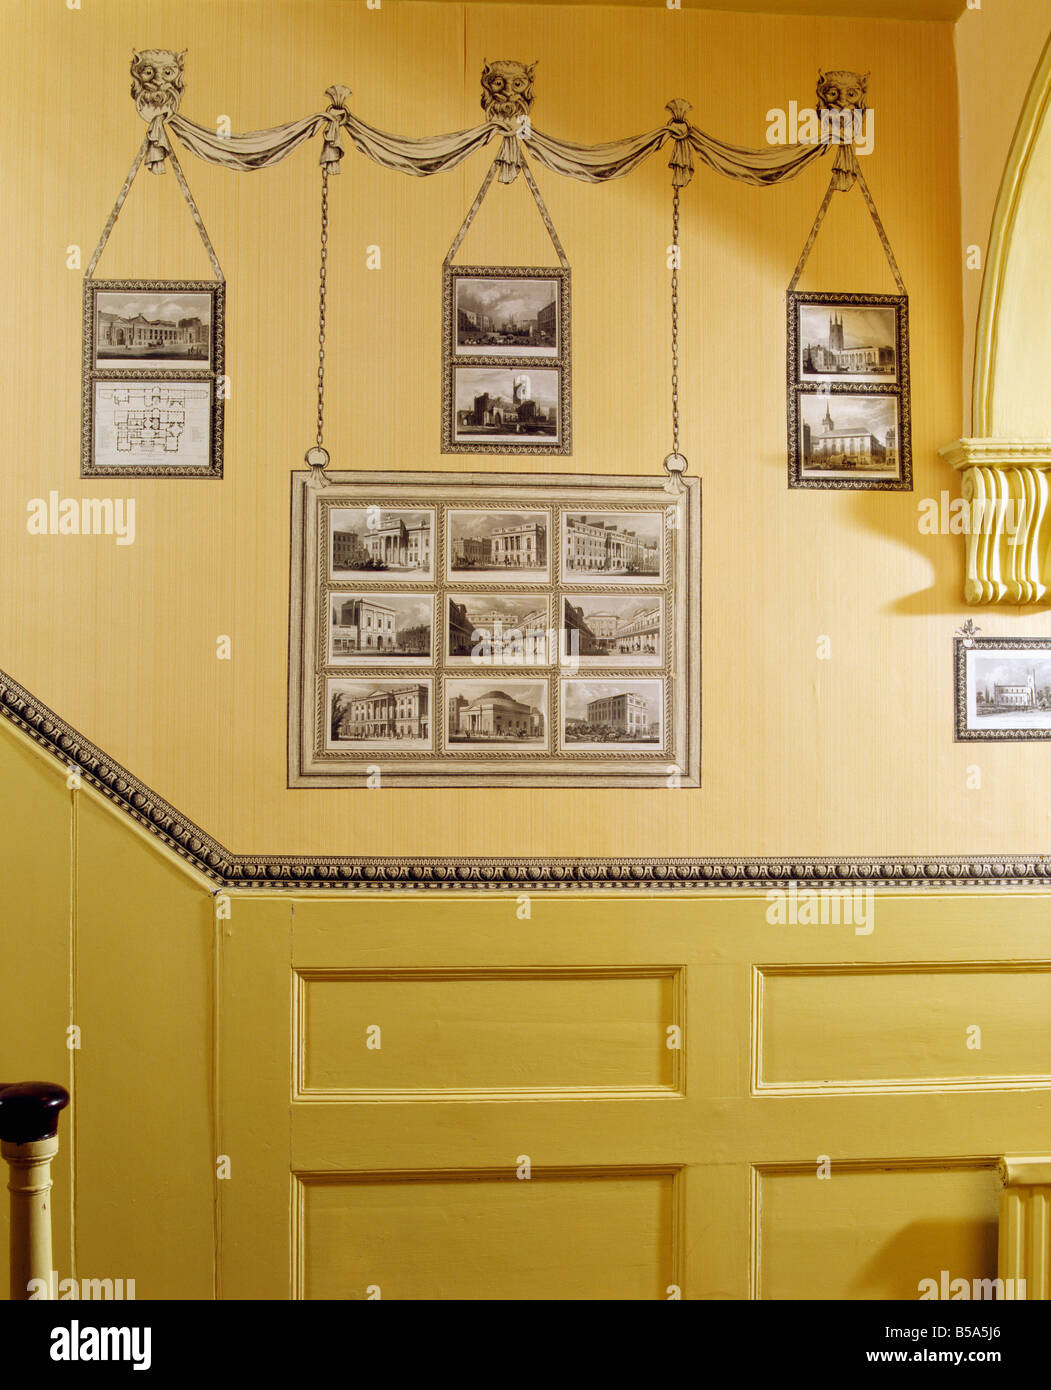 Decoupage black and white print room drawings above dado panelling in traditional yellow hall - Stock Image